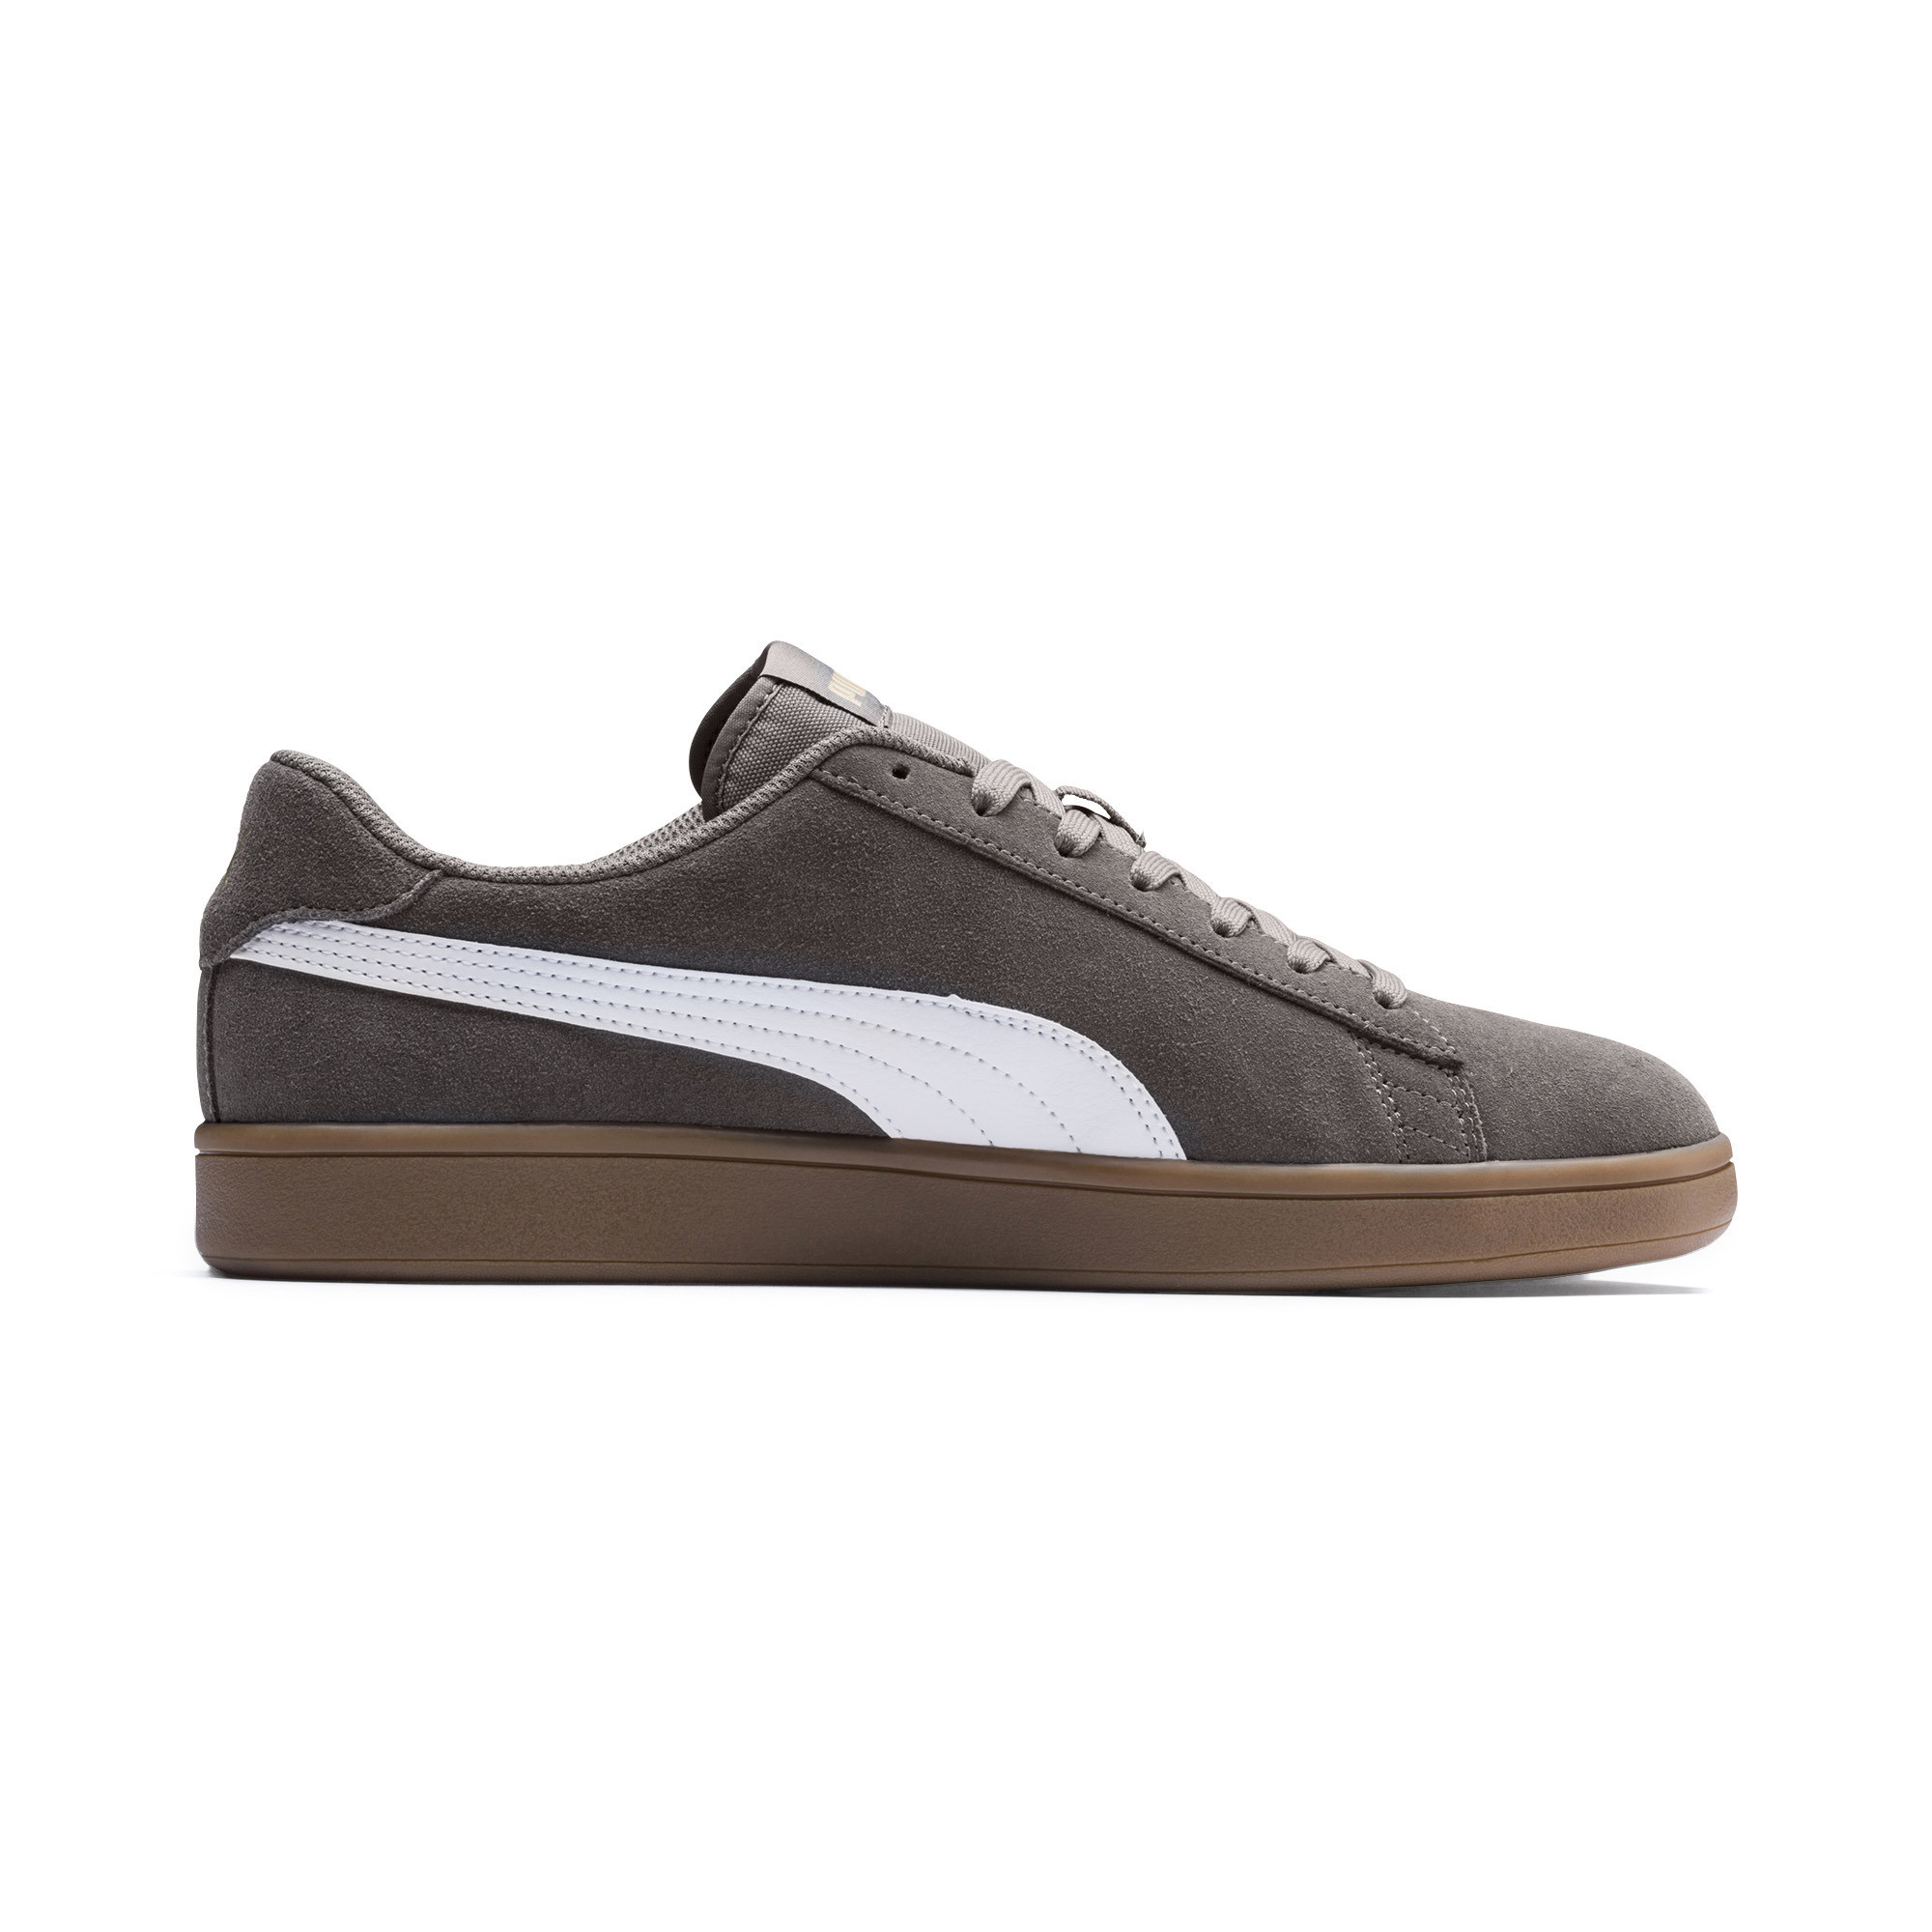 PUMA-PUMA-Smash-v2-Men-039-s-Sneakers-Men-Shoe-Basics thumbnail 44